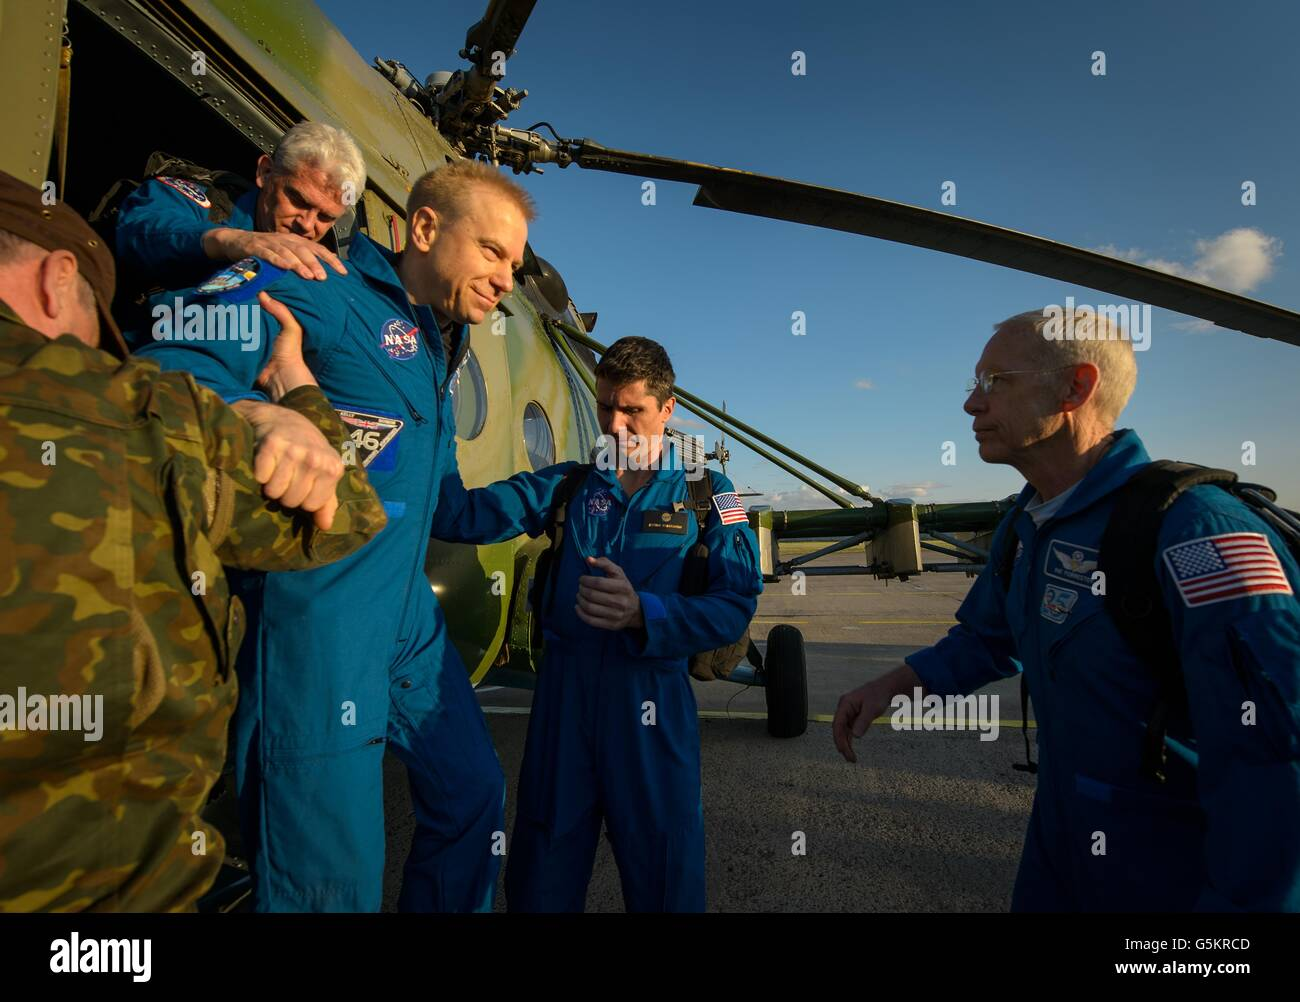 International Space Station crew from Expedition 47 crew American astronaut Tim Kopra is assisted as he steps off - Stock Image